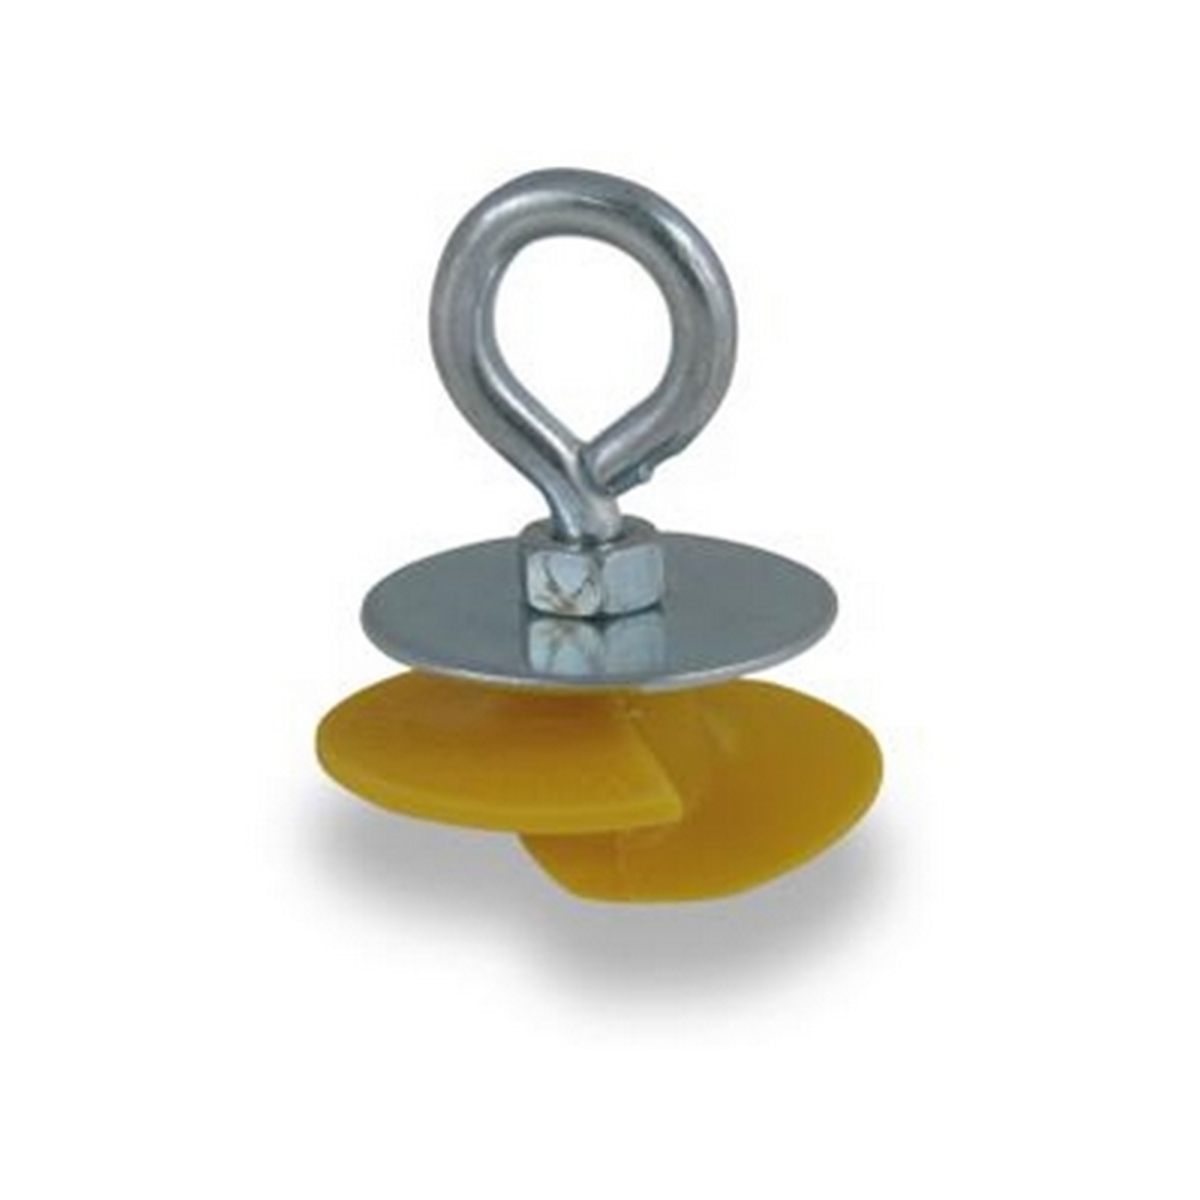 Cloud Anchor   Twist-in cloud anchor w/ eye-hook (qty 12)